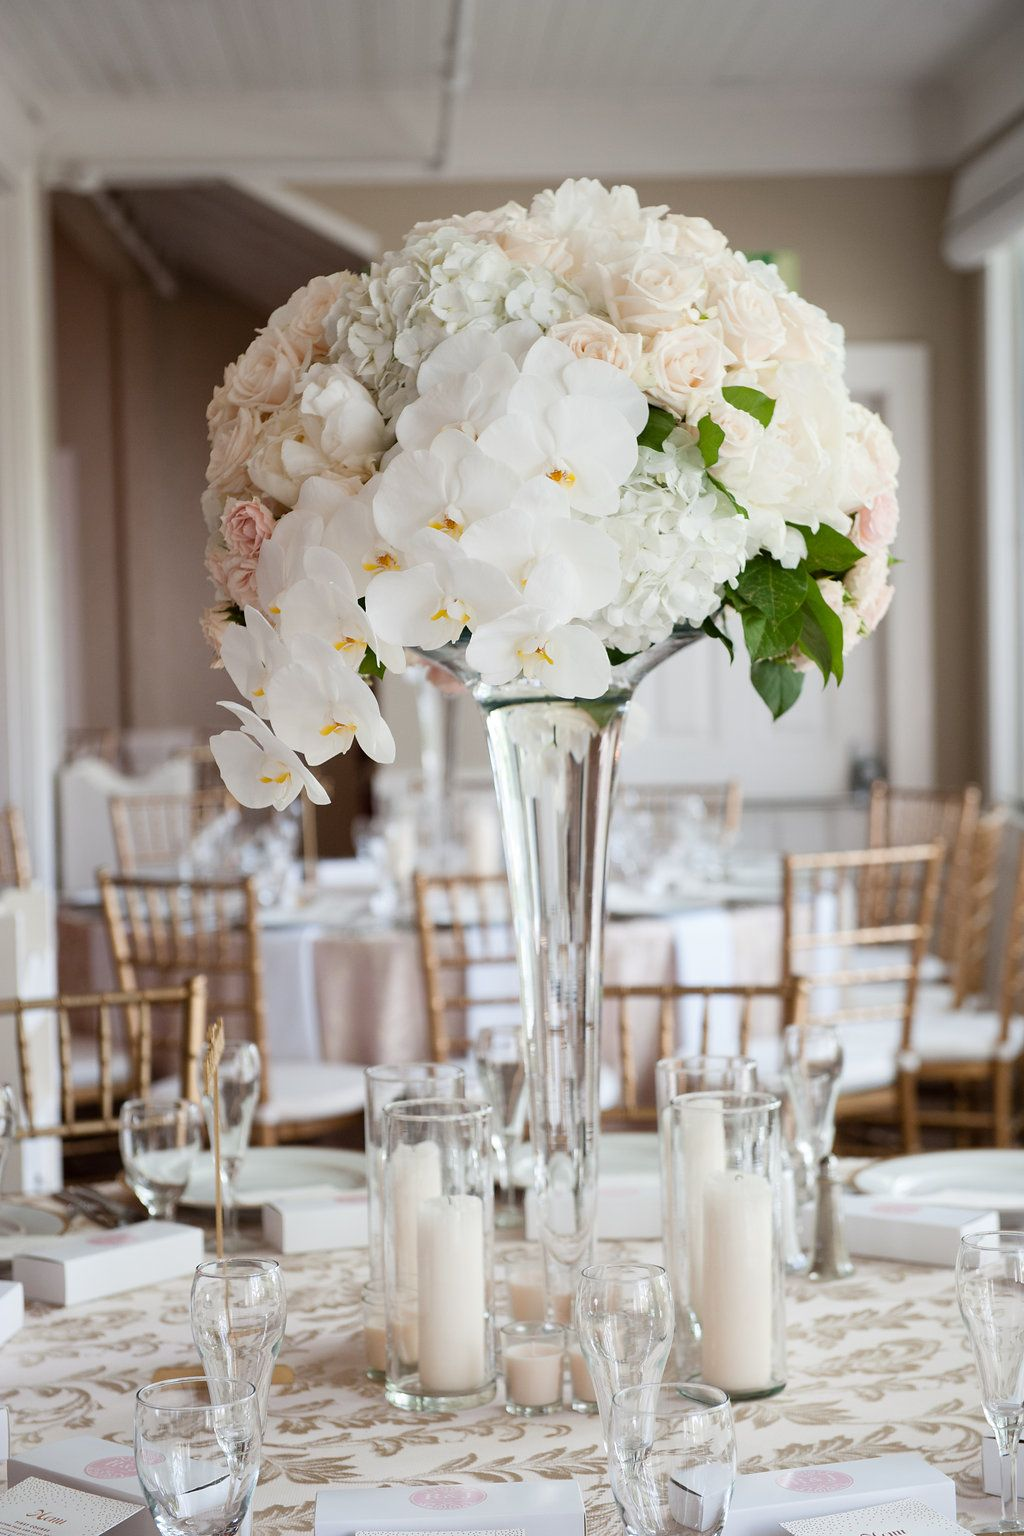 Tall White Centerpieces for an Elegant Wianno Club Wedding Planning ...